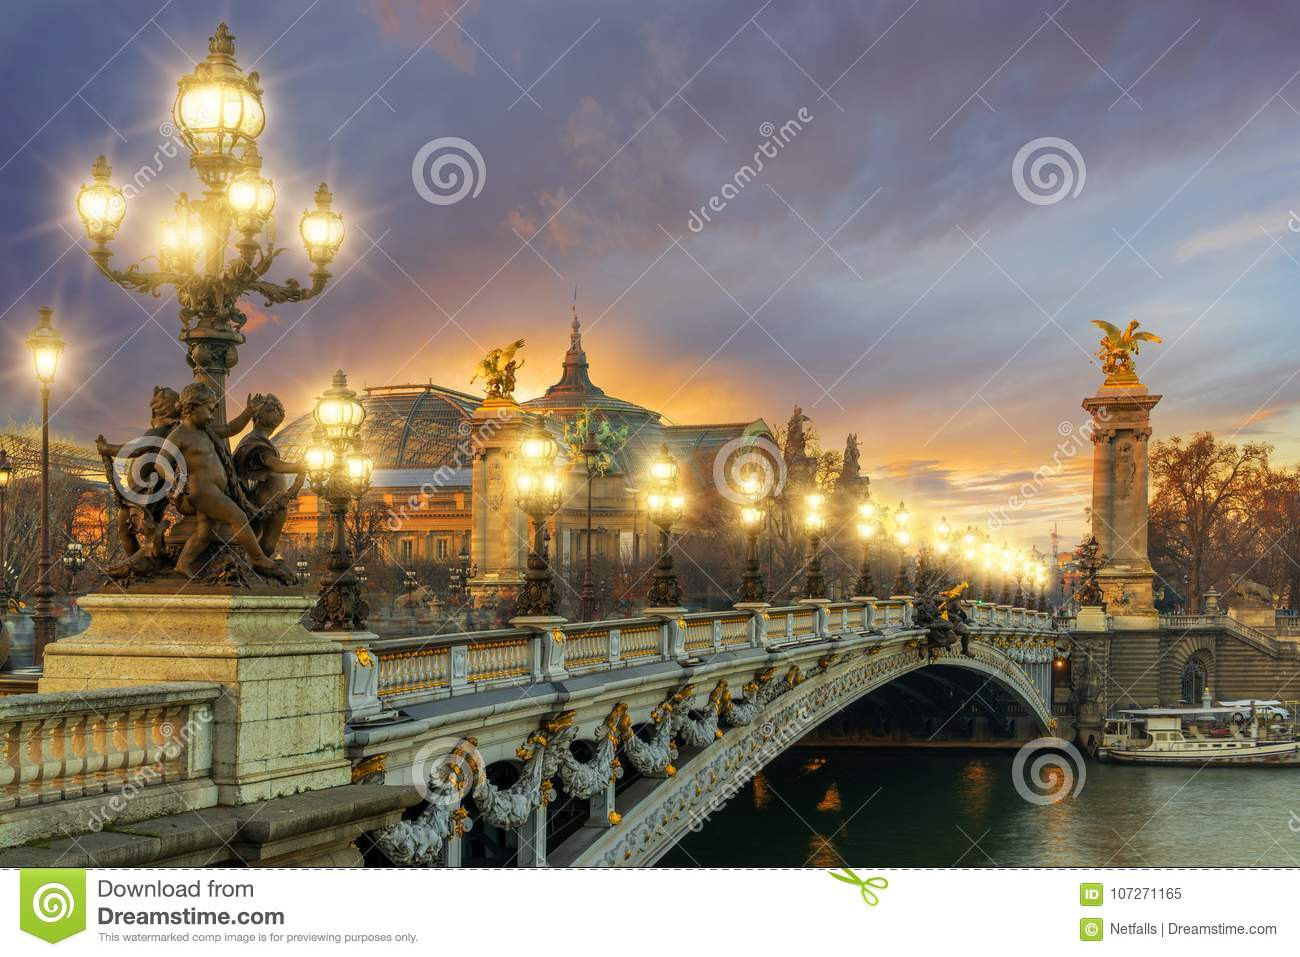 Bridge of the Alexandre III, Paris